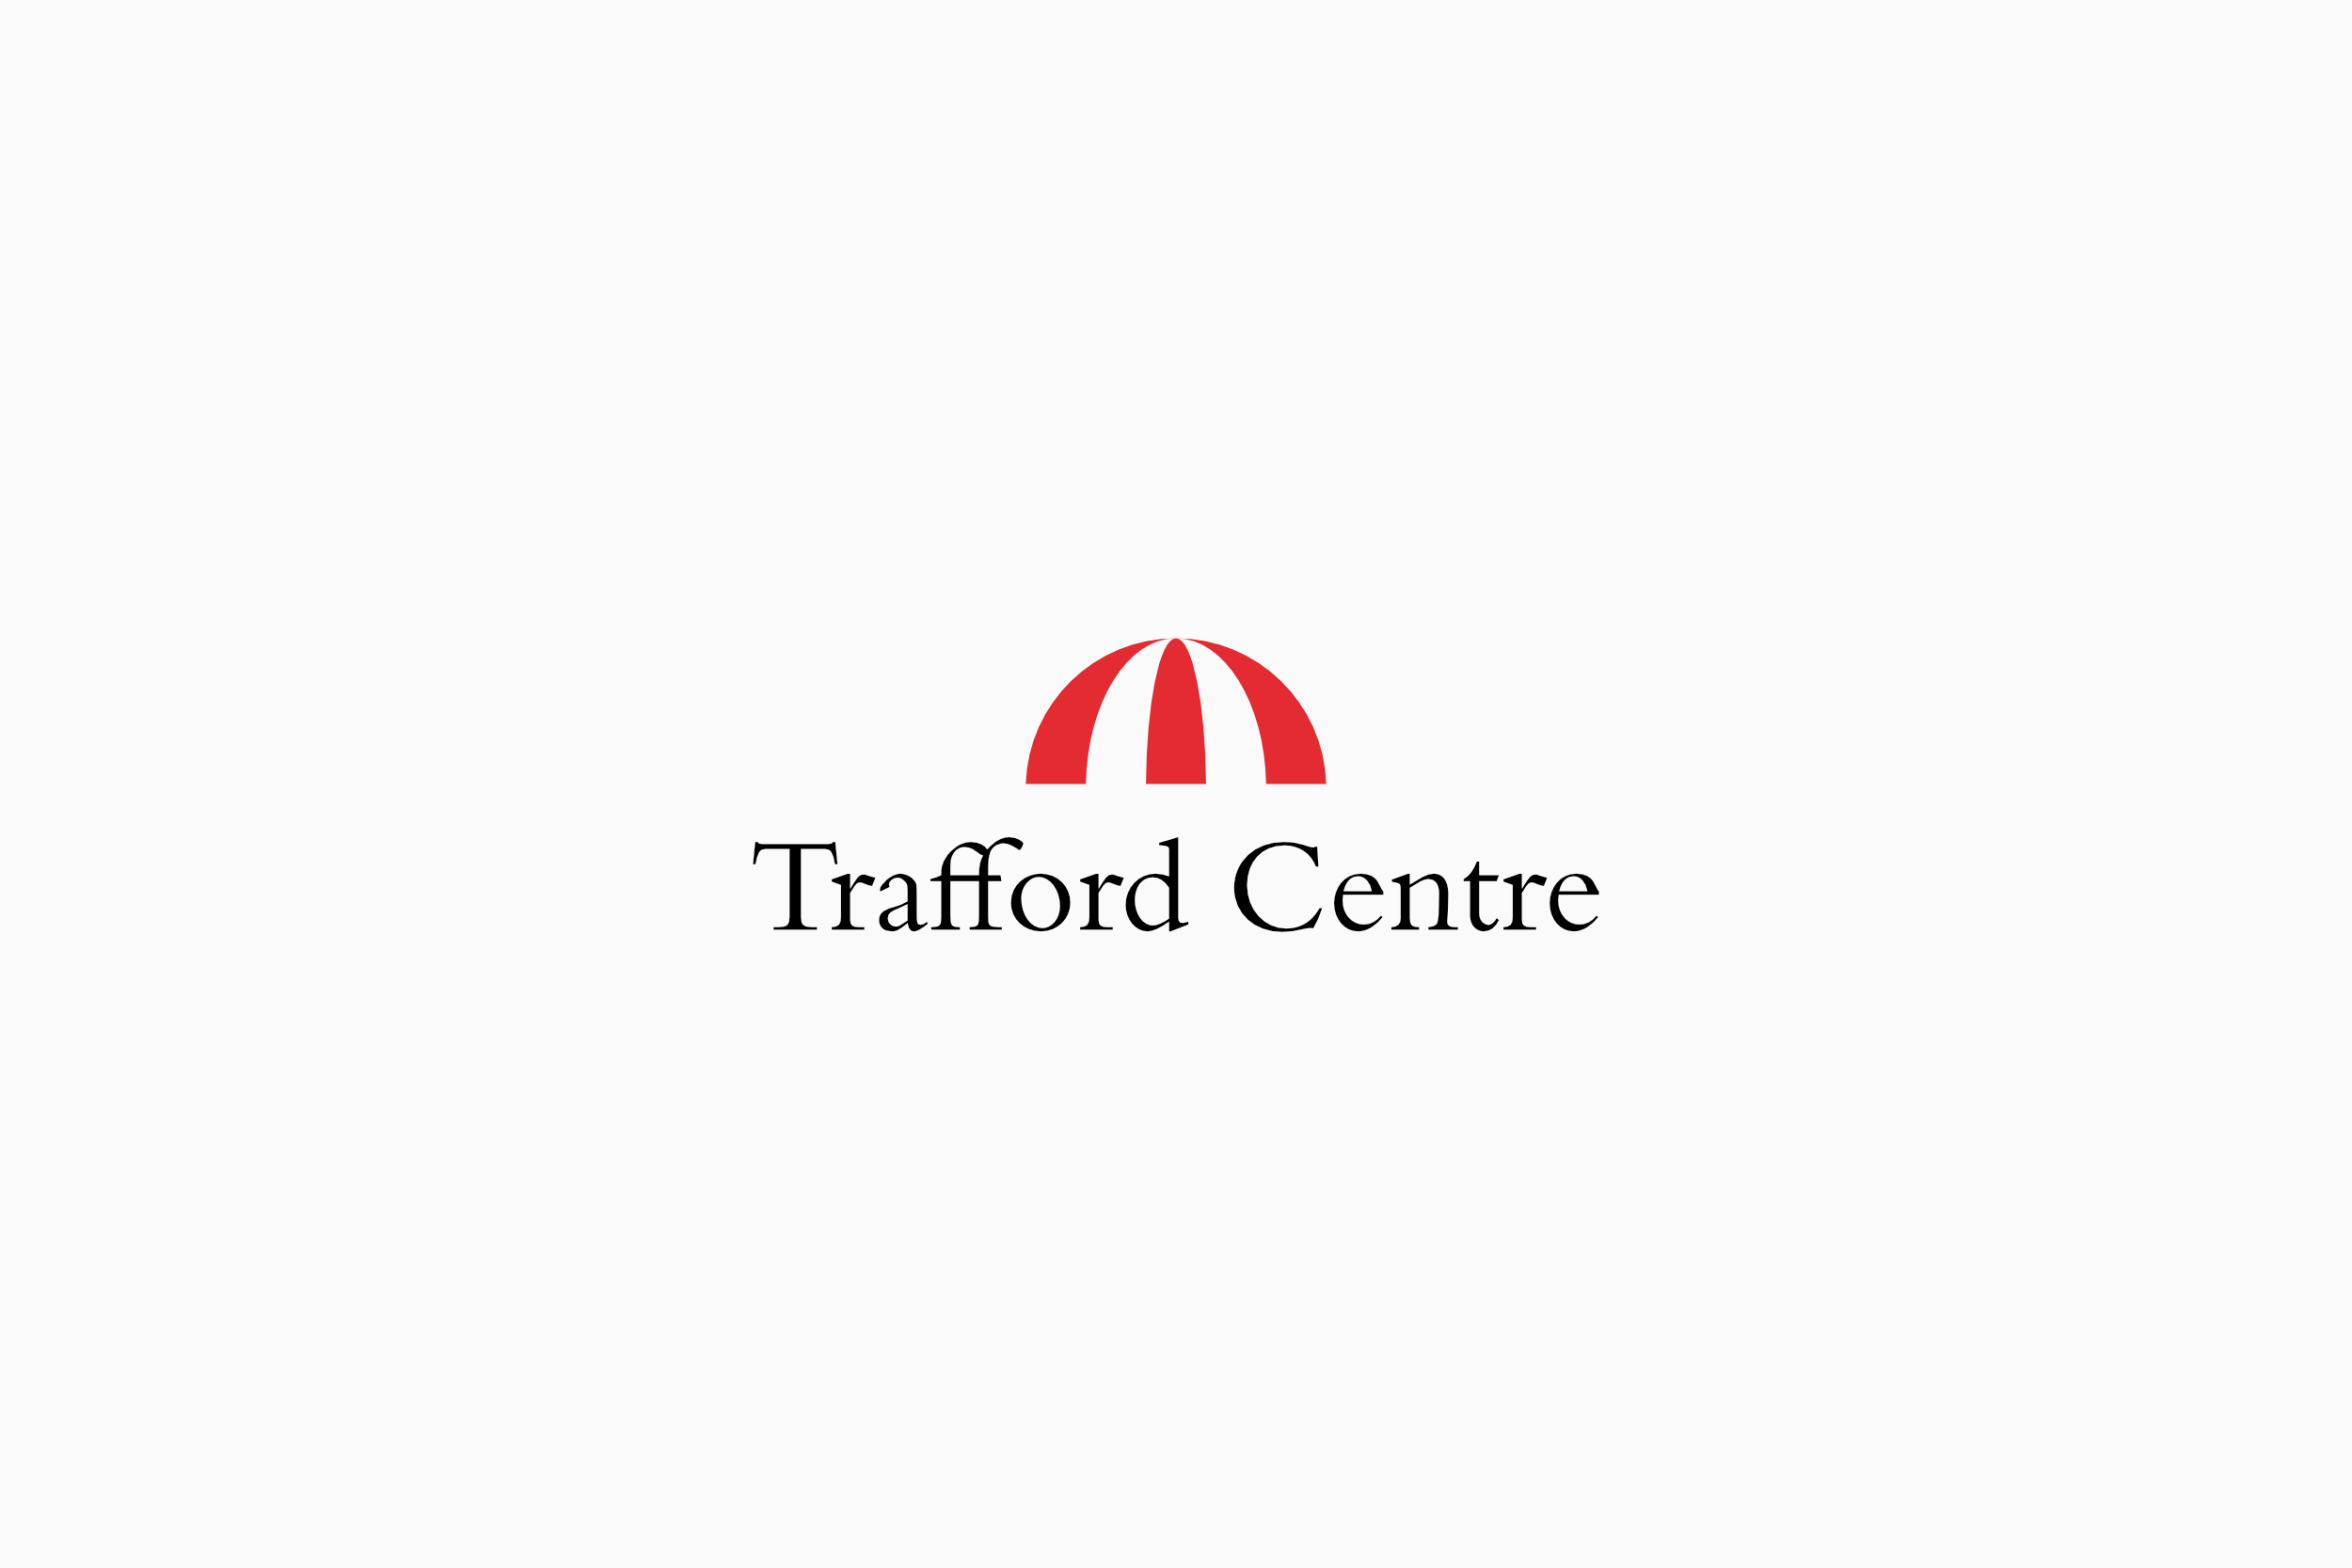 Trafford Centre Logo.png